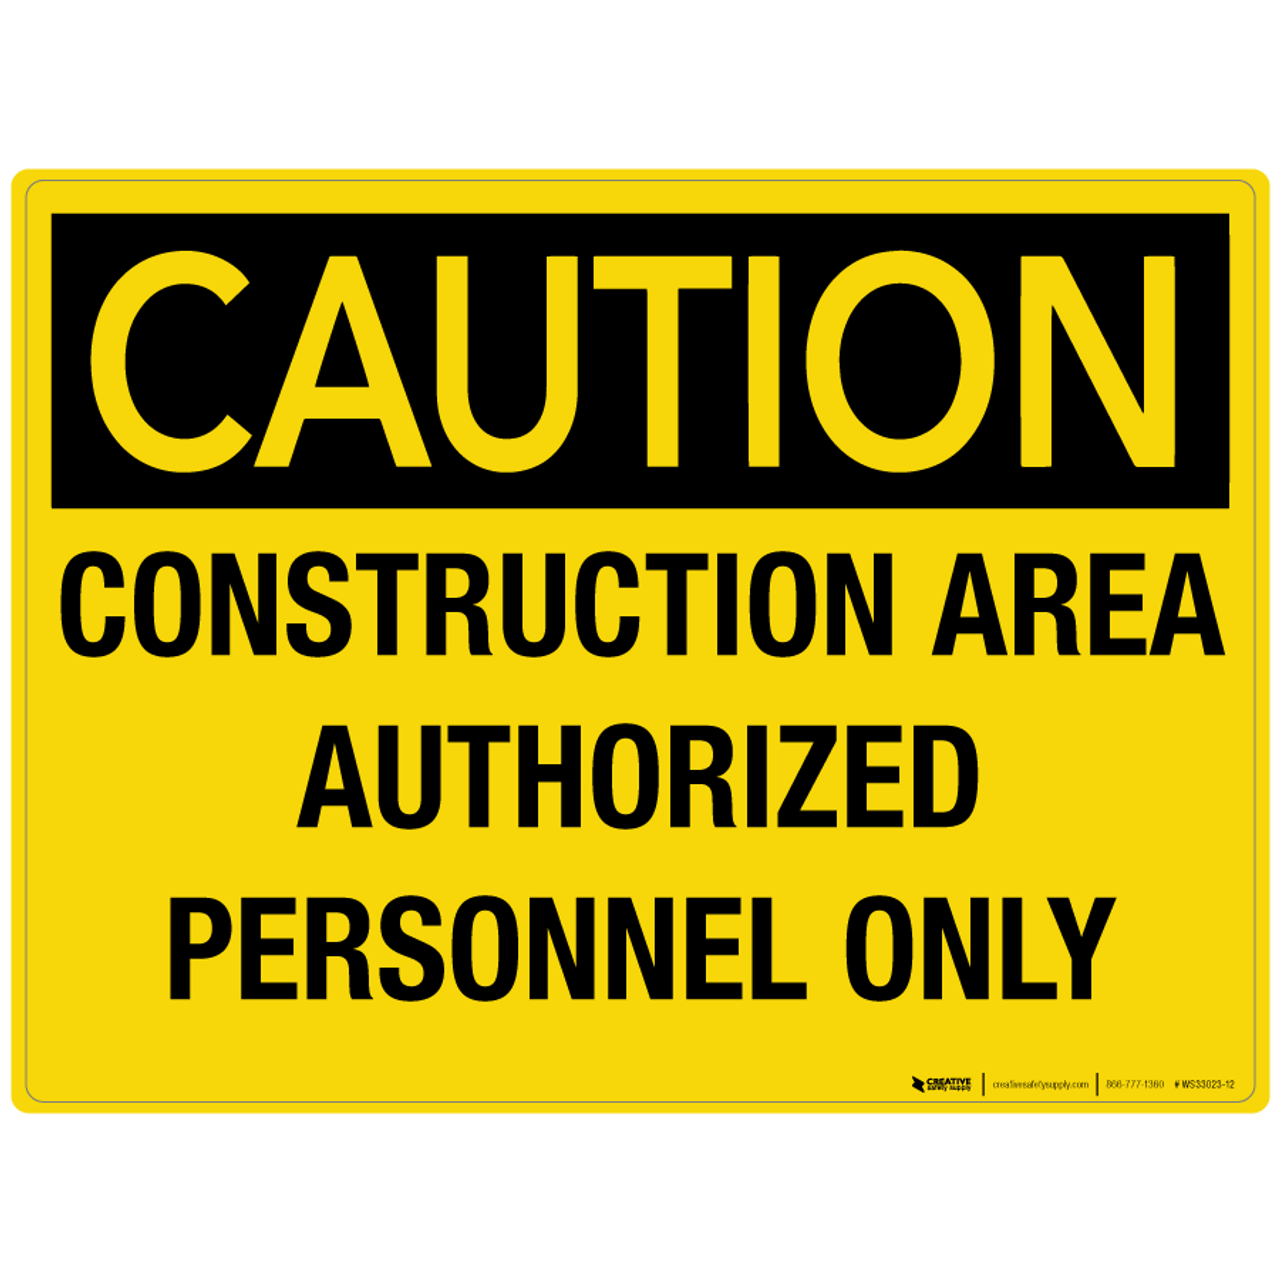 Construction Area Authorized Personnel Only Hard Hats Required OSHA Sign